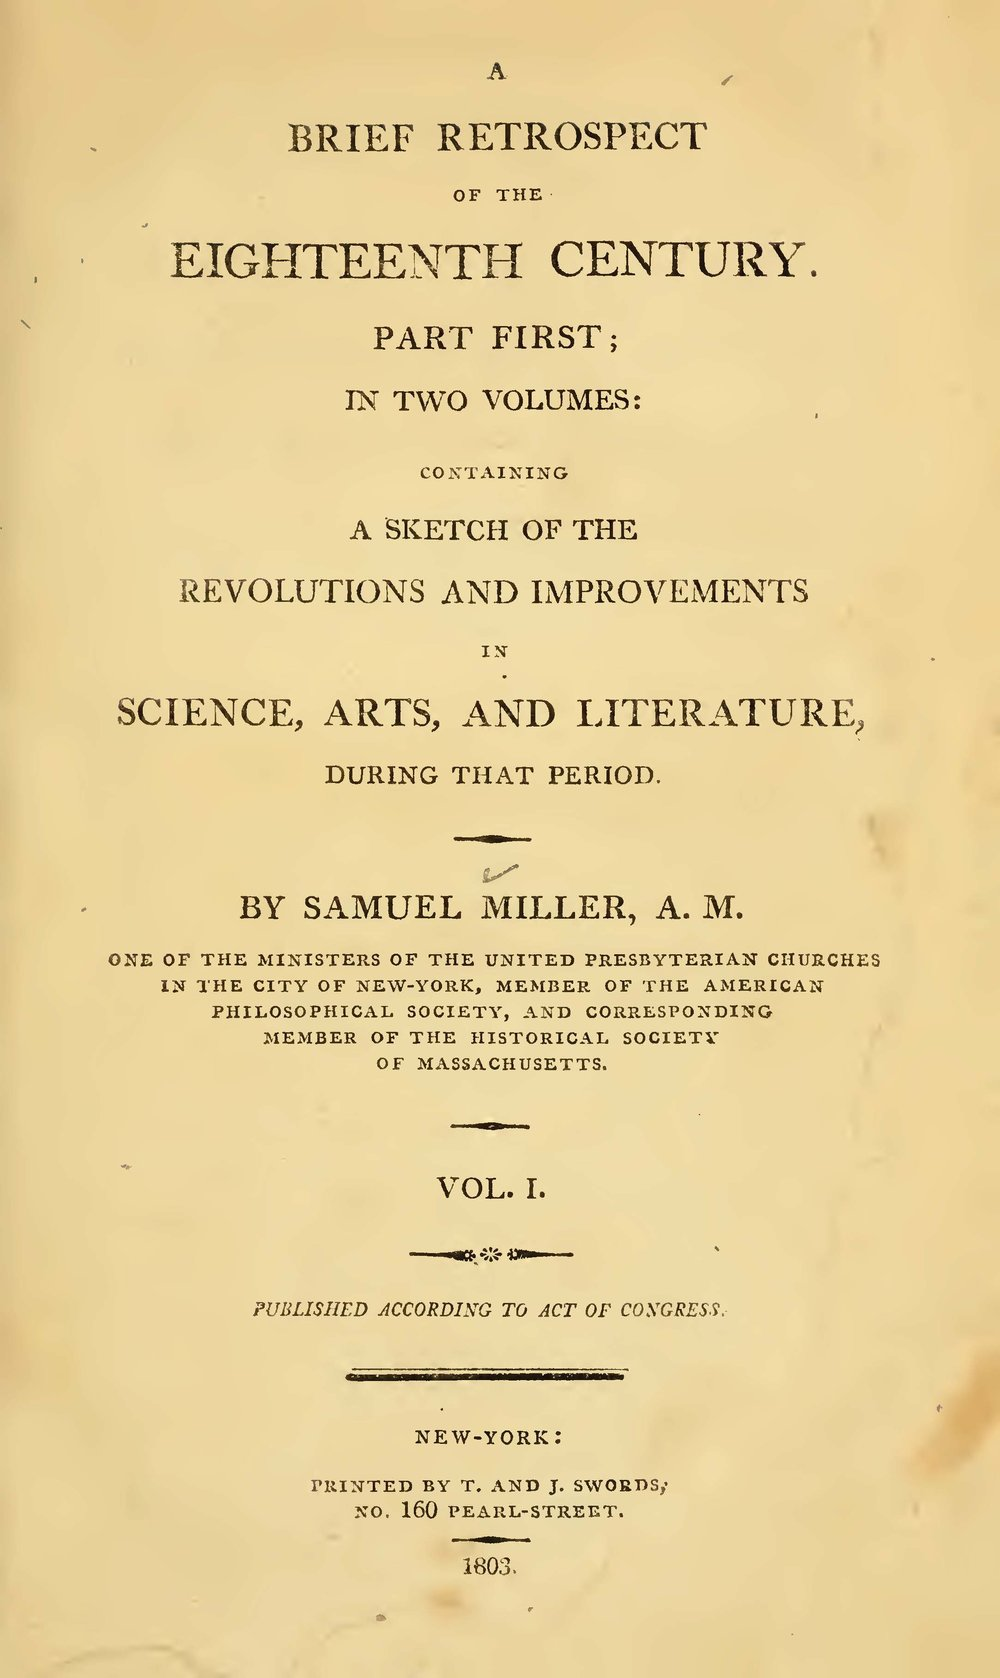 Miller, Samuel, A Brief Retrospect of the Eighteenth Century, Vol. 1 Title Page.jpg